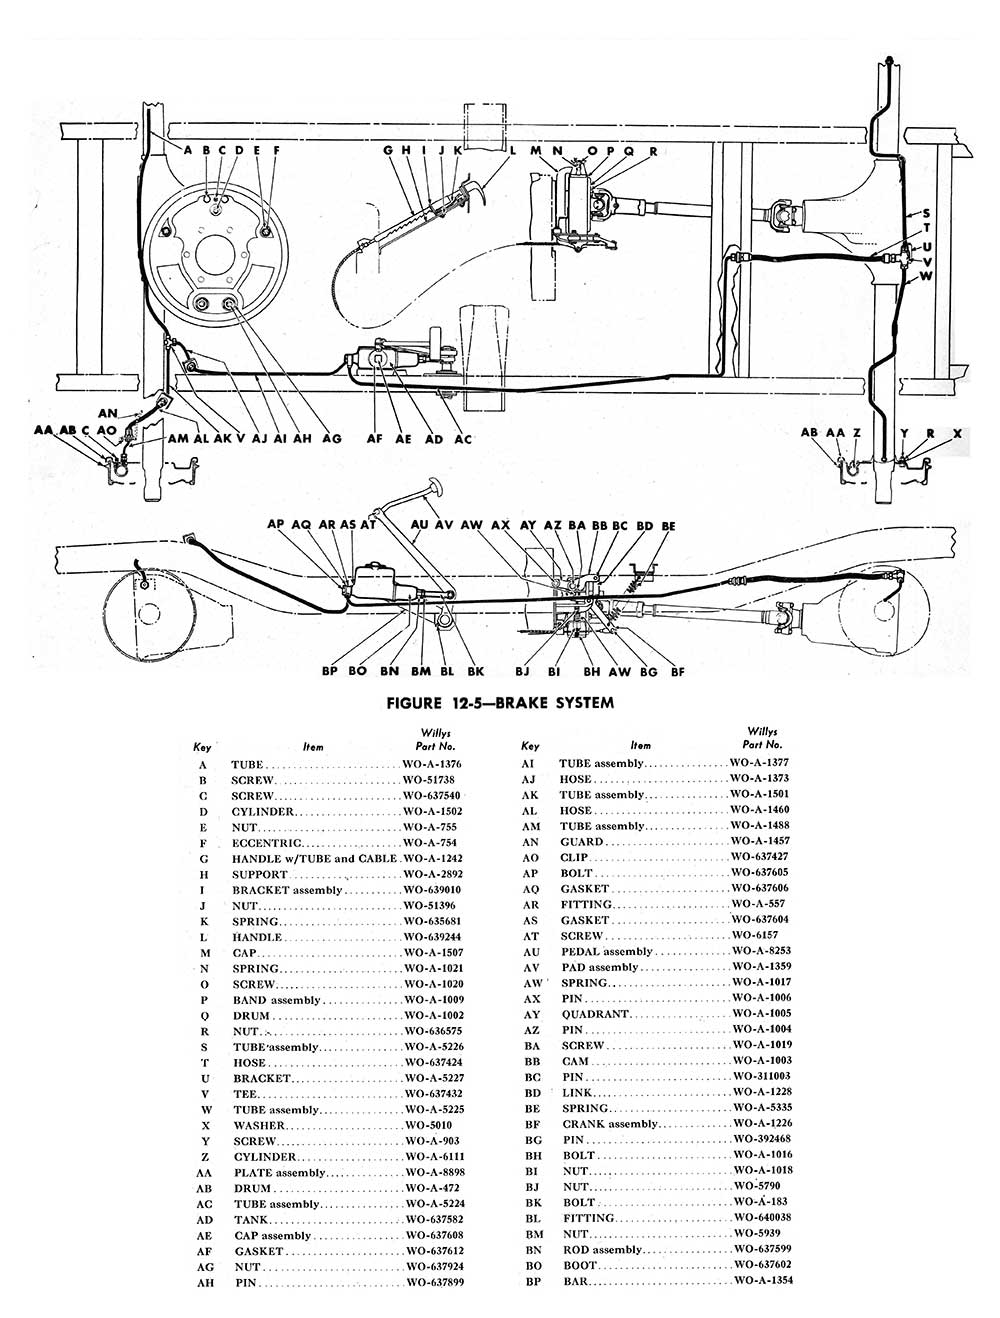 hight resolution of willys jeepster wiring diagram imageresizertool com residential electrical wiring diagrams automotive wiring diagrams